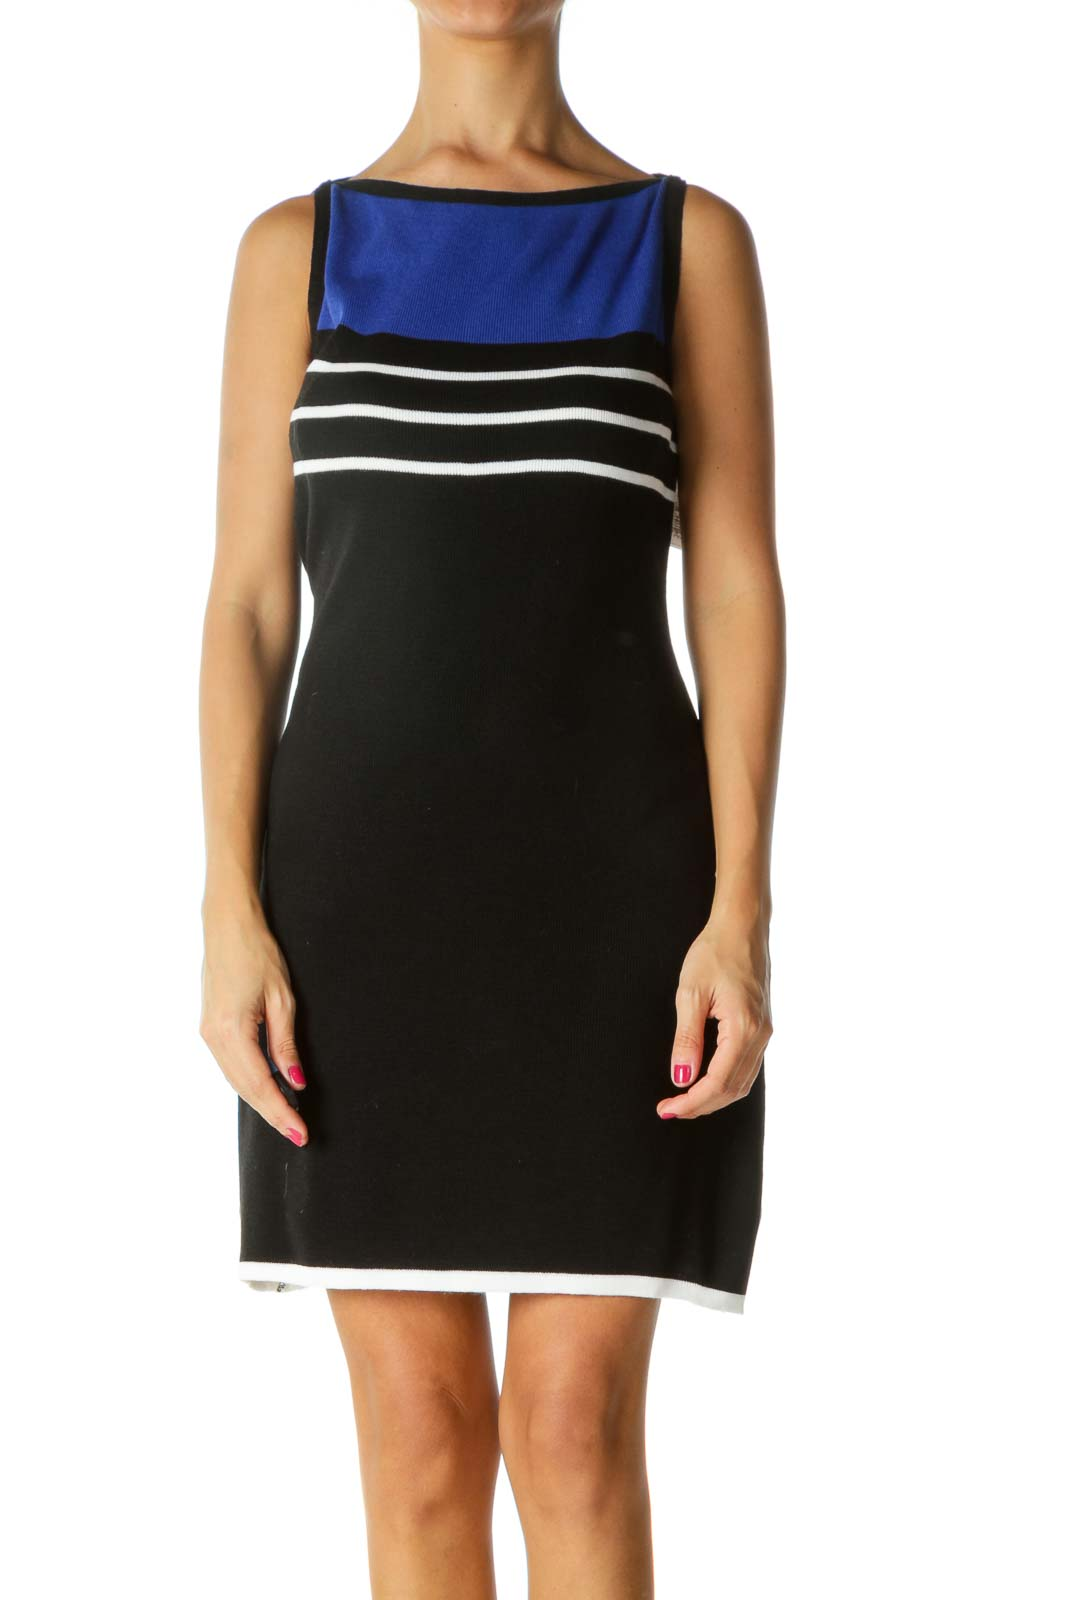 Blue Black White Boat Neck Striped Knit Dress